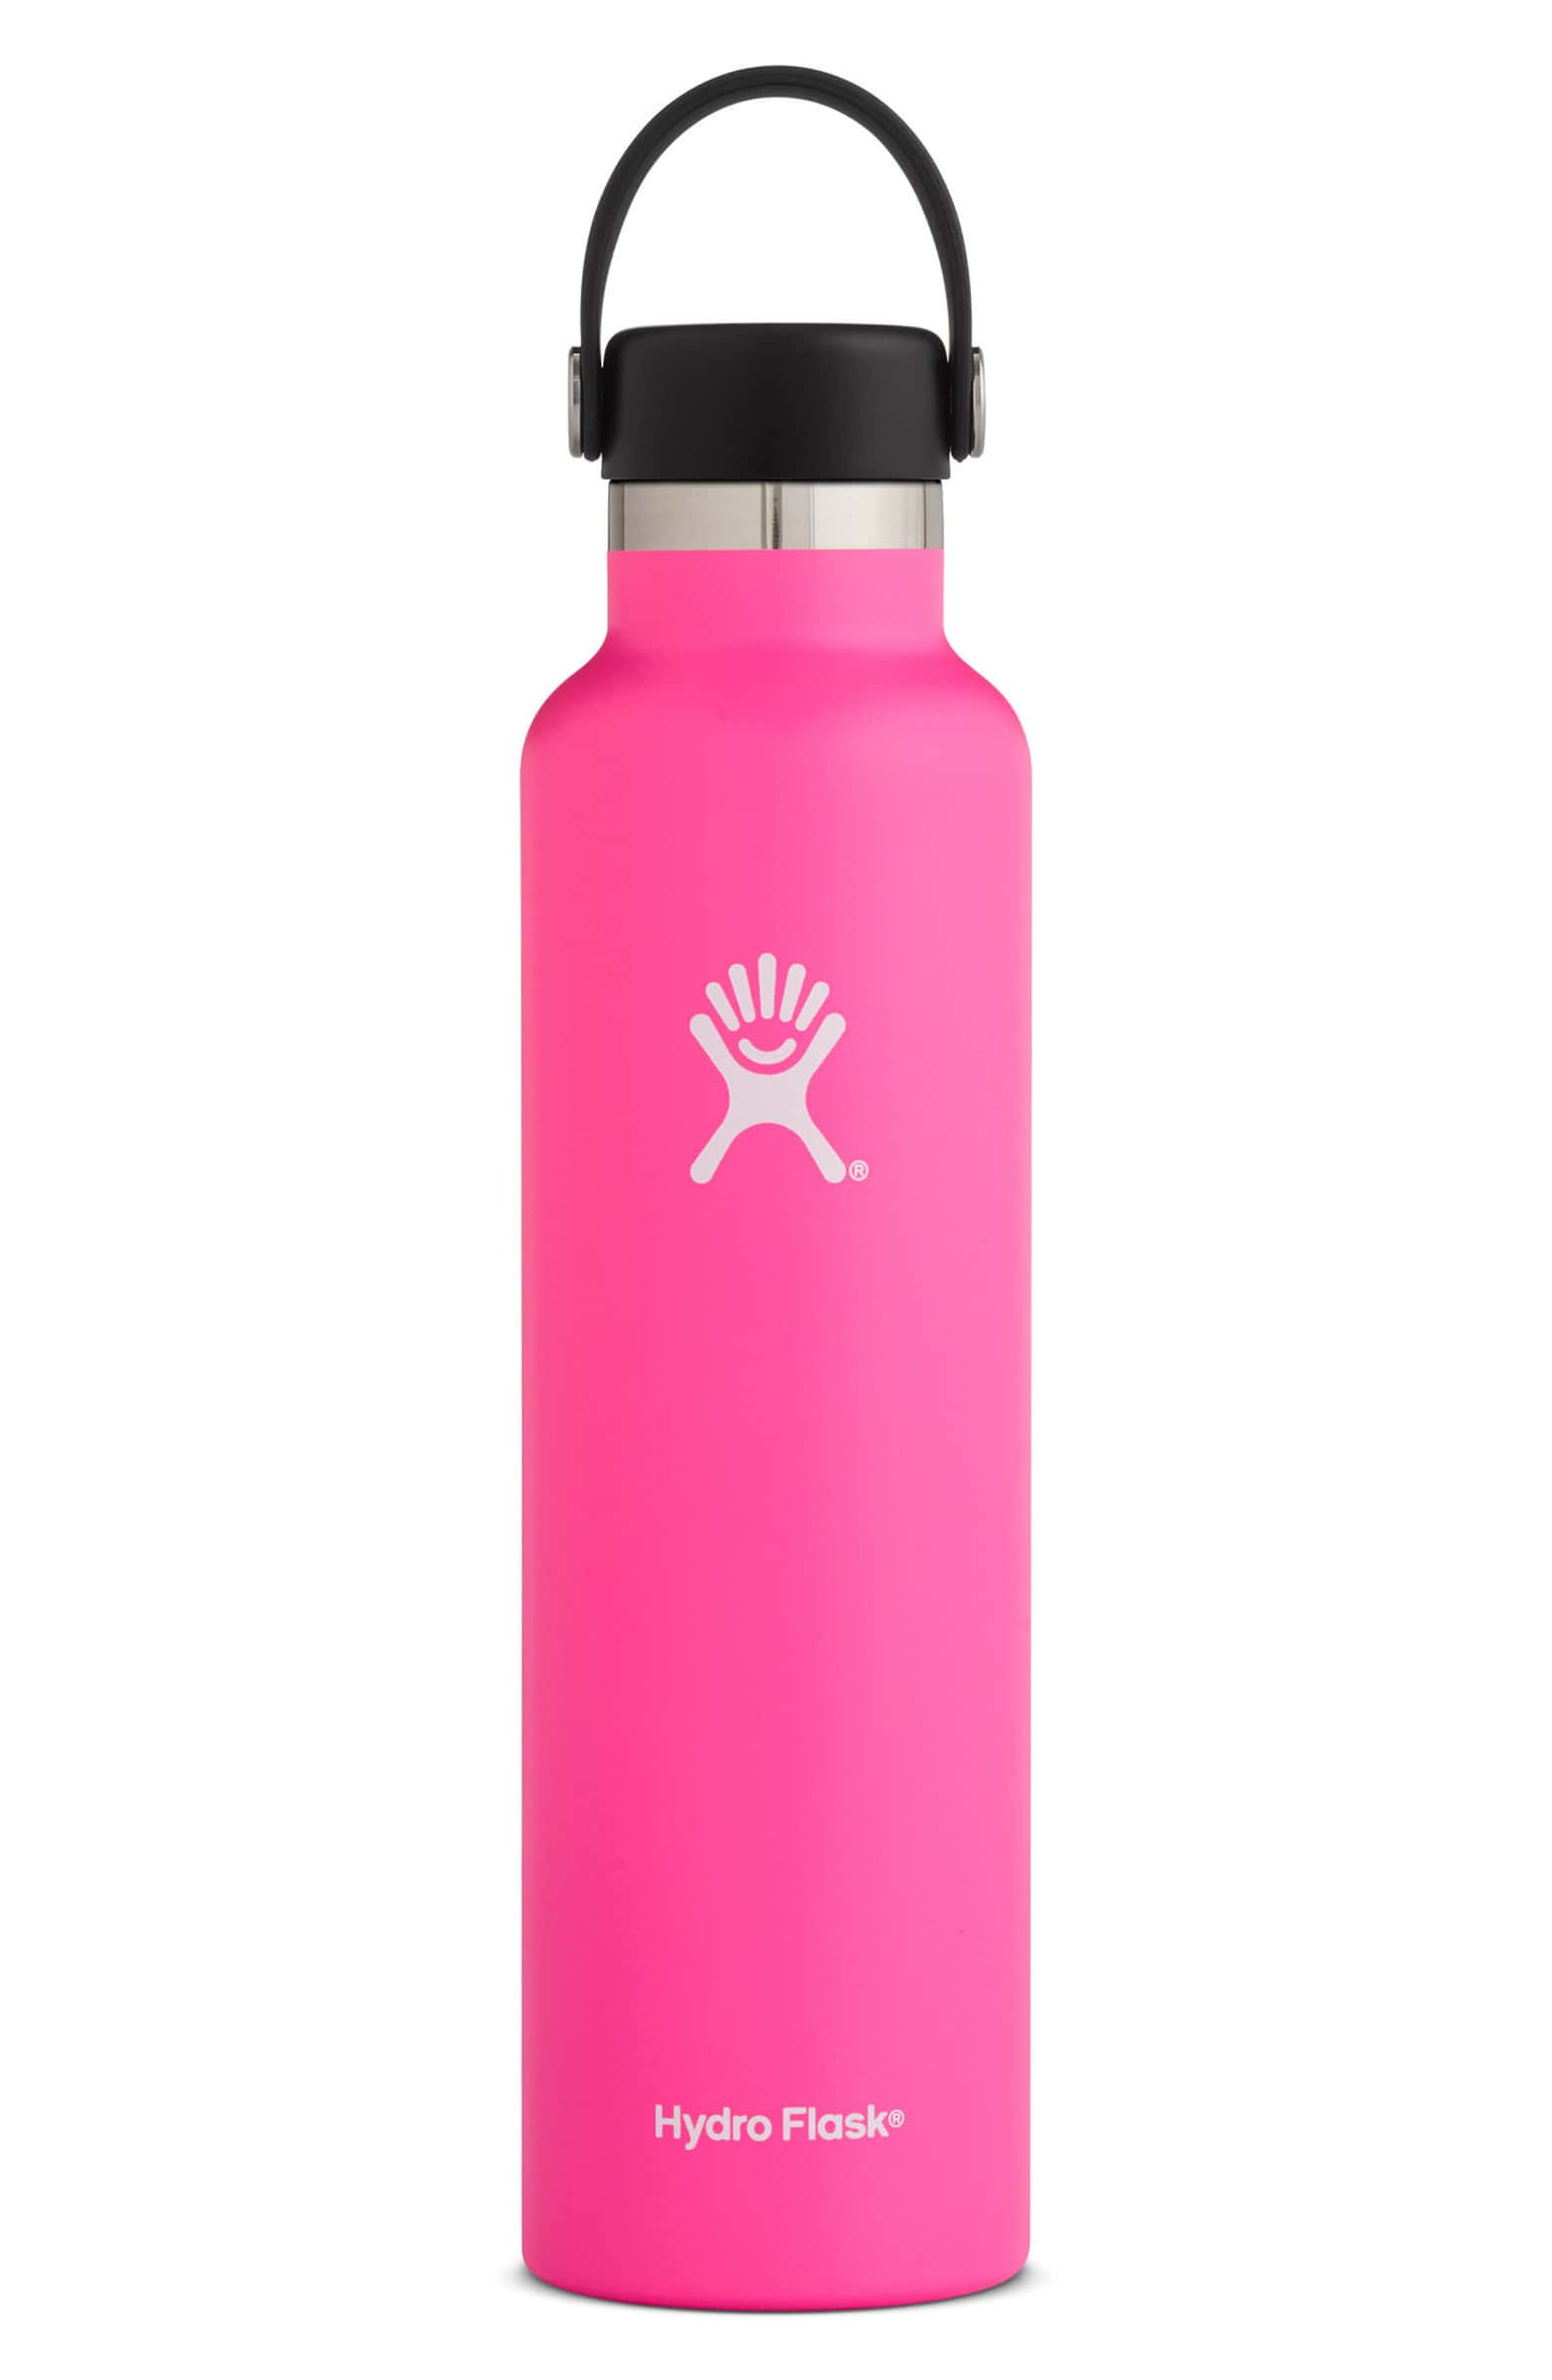 Hydro Flask 24-Ounce Bottle